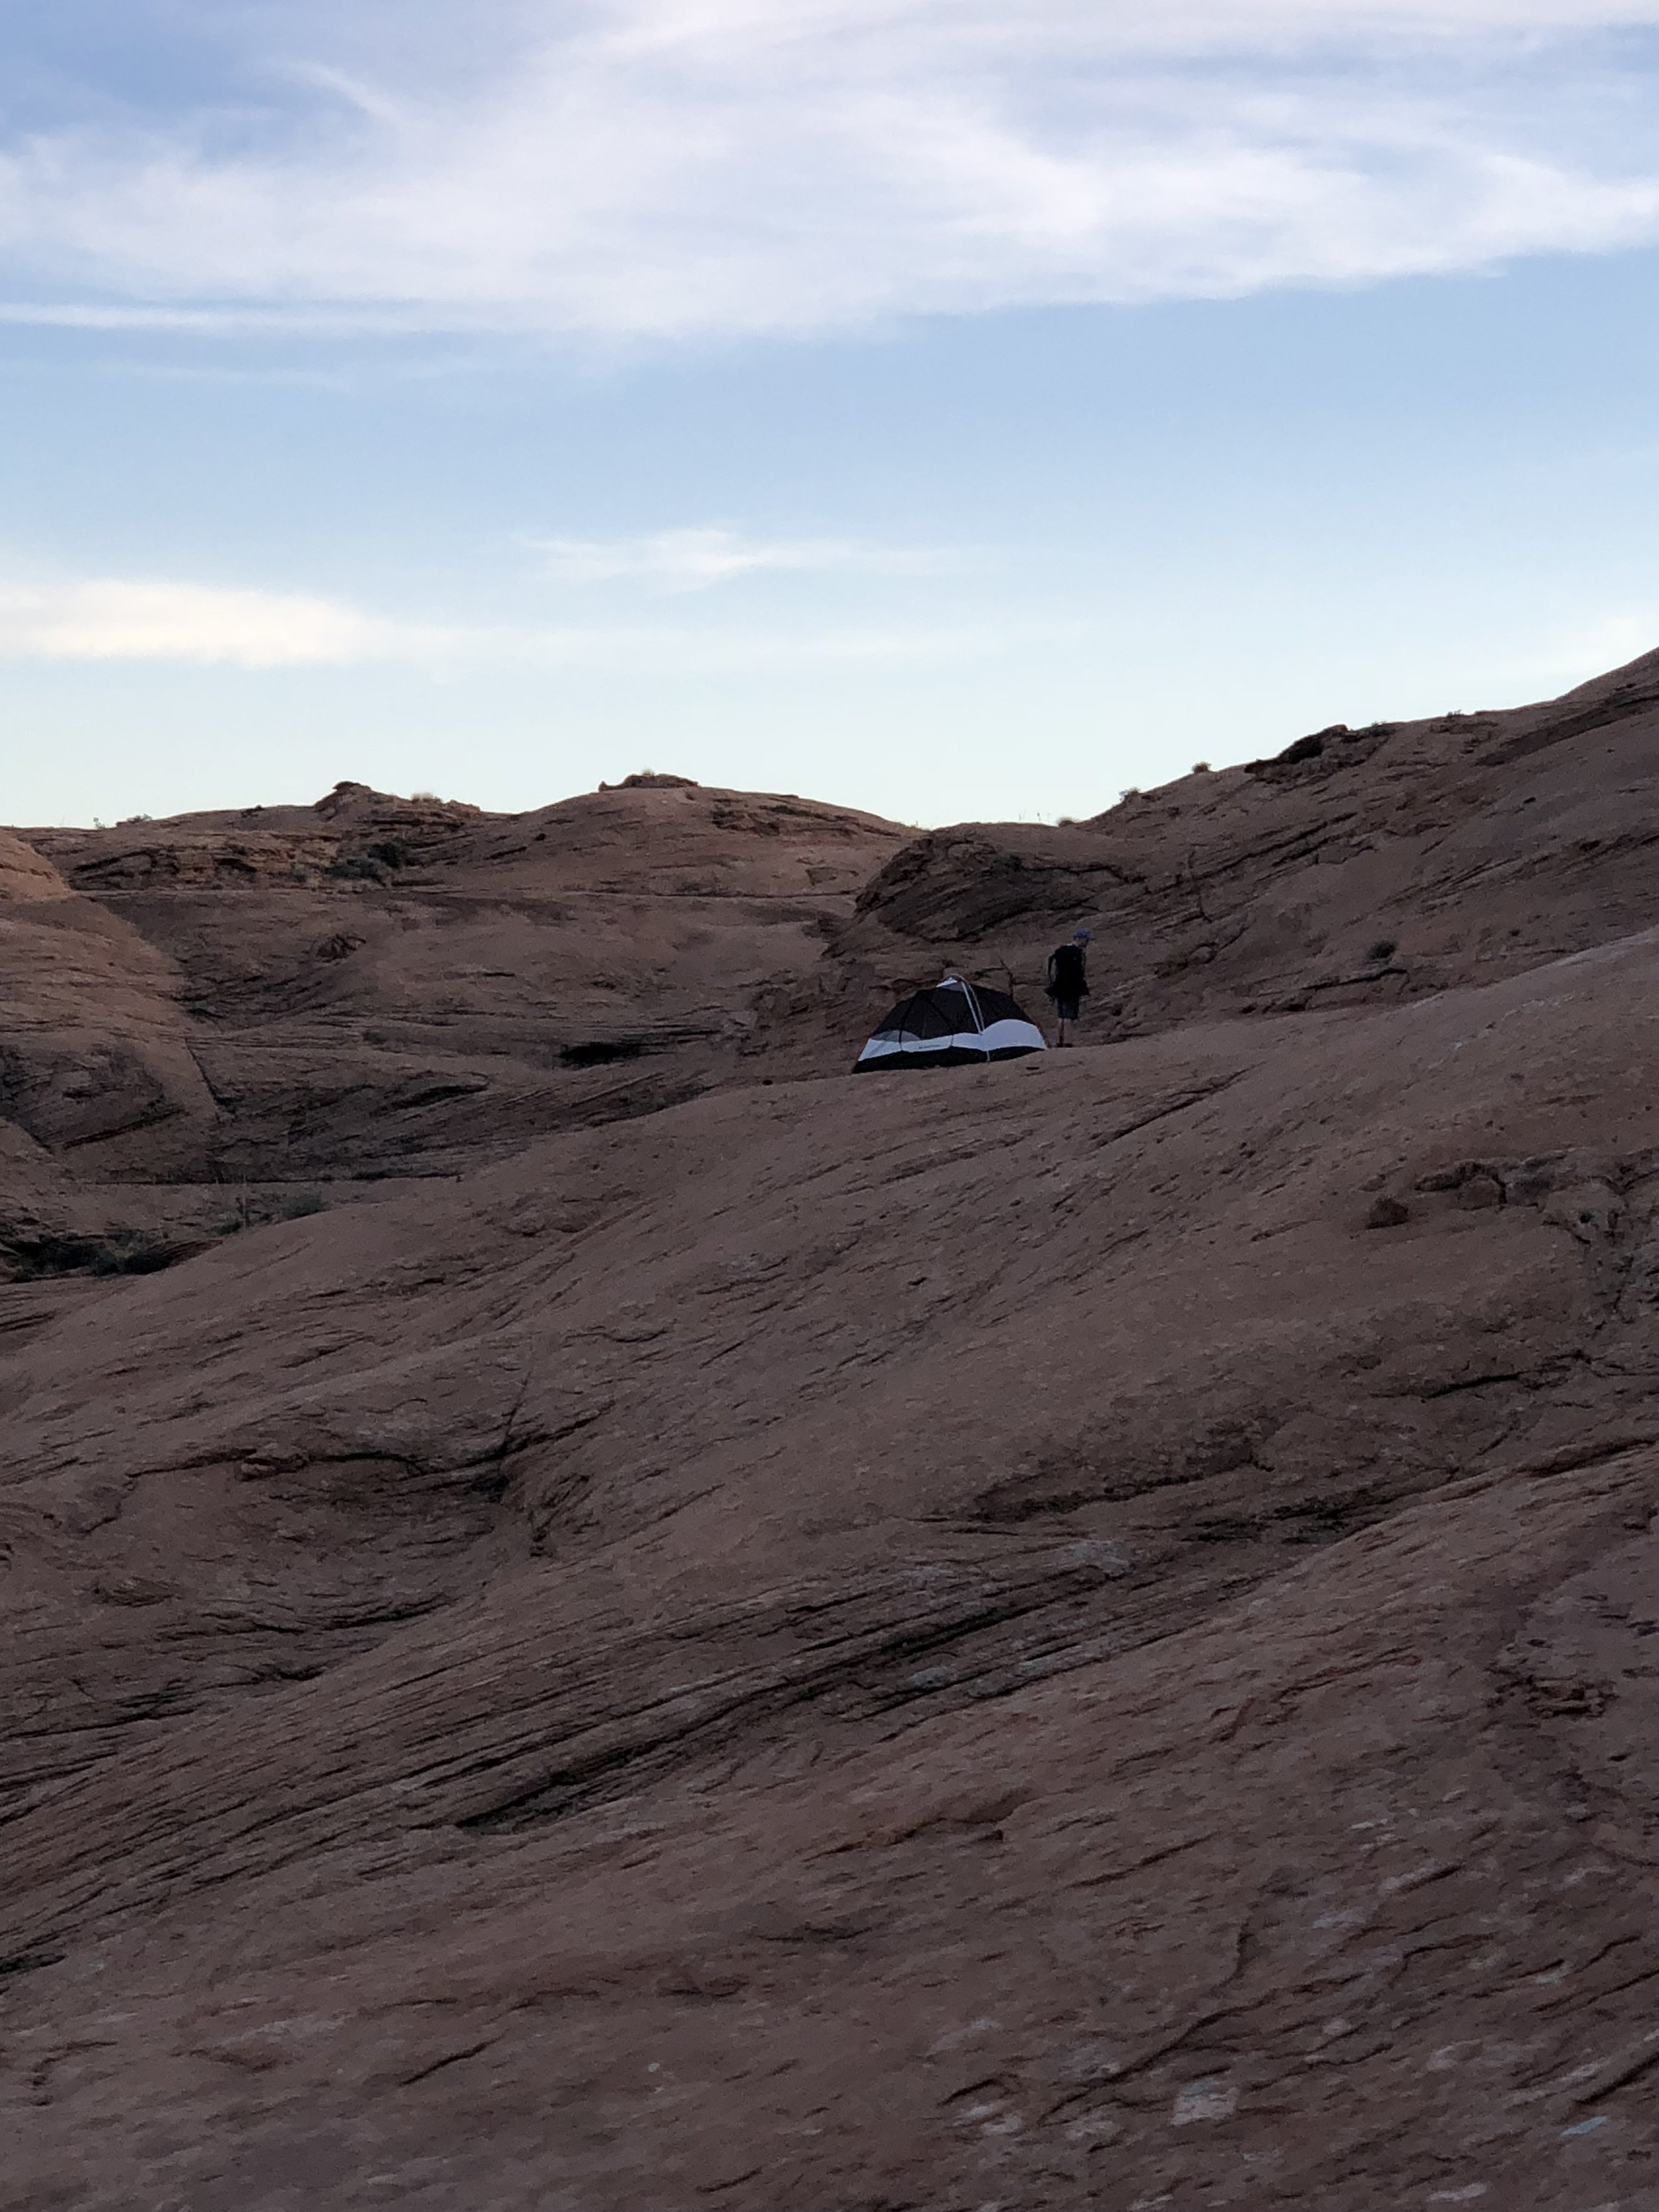 Here is a visual of our campsite on a flat portion of the rock face!